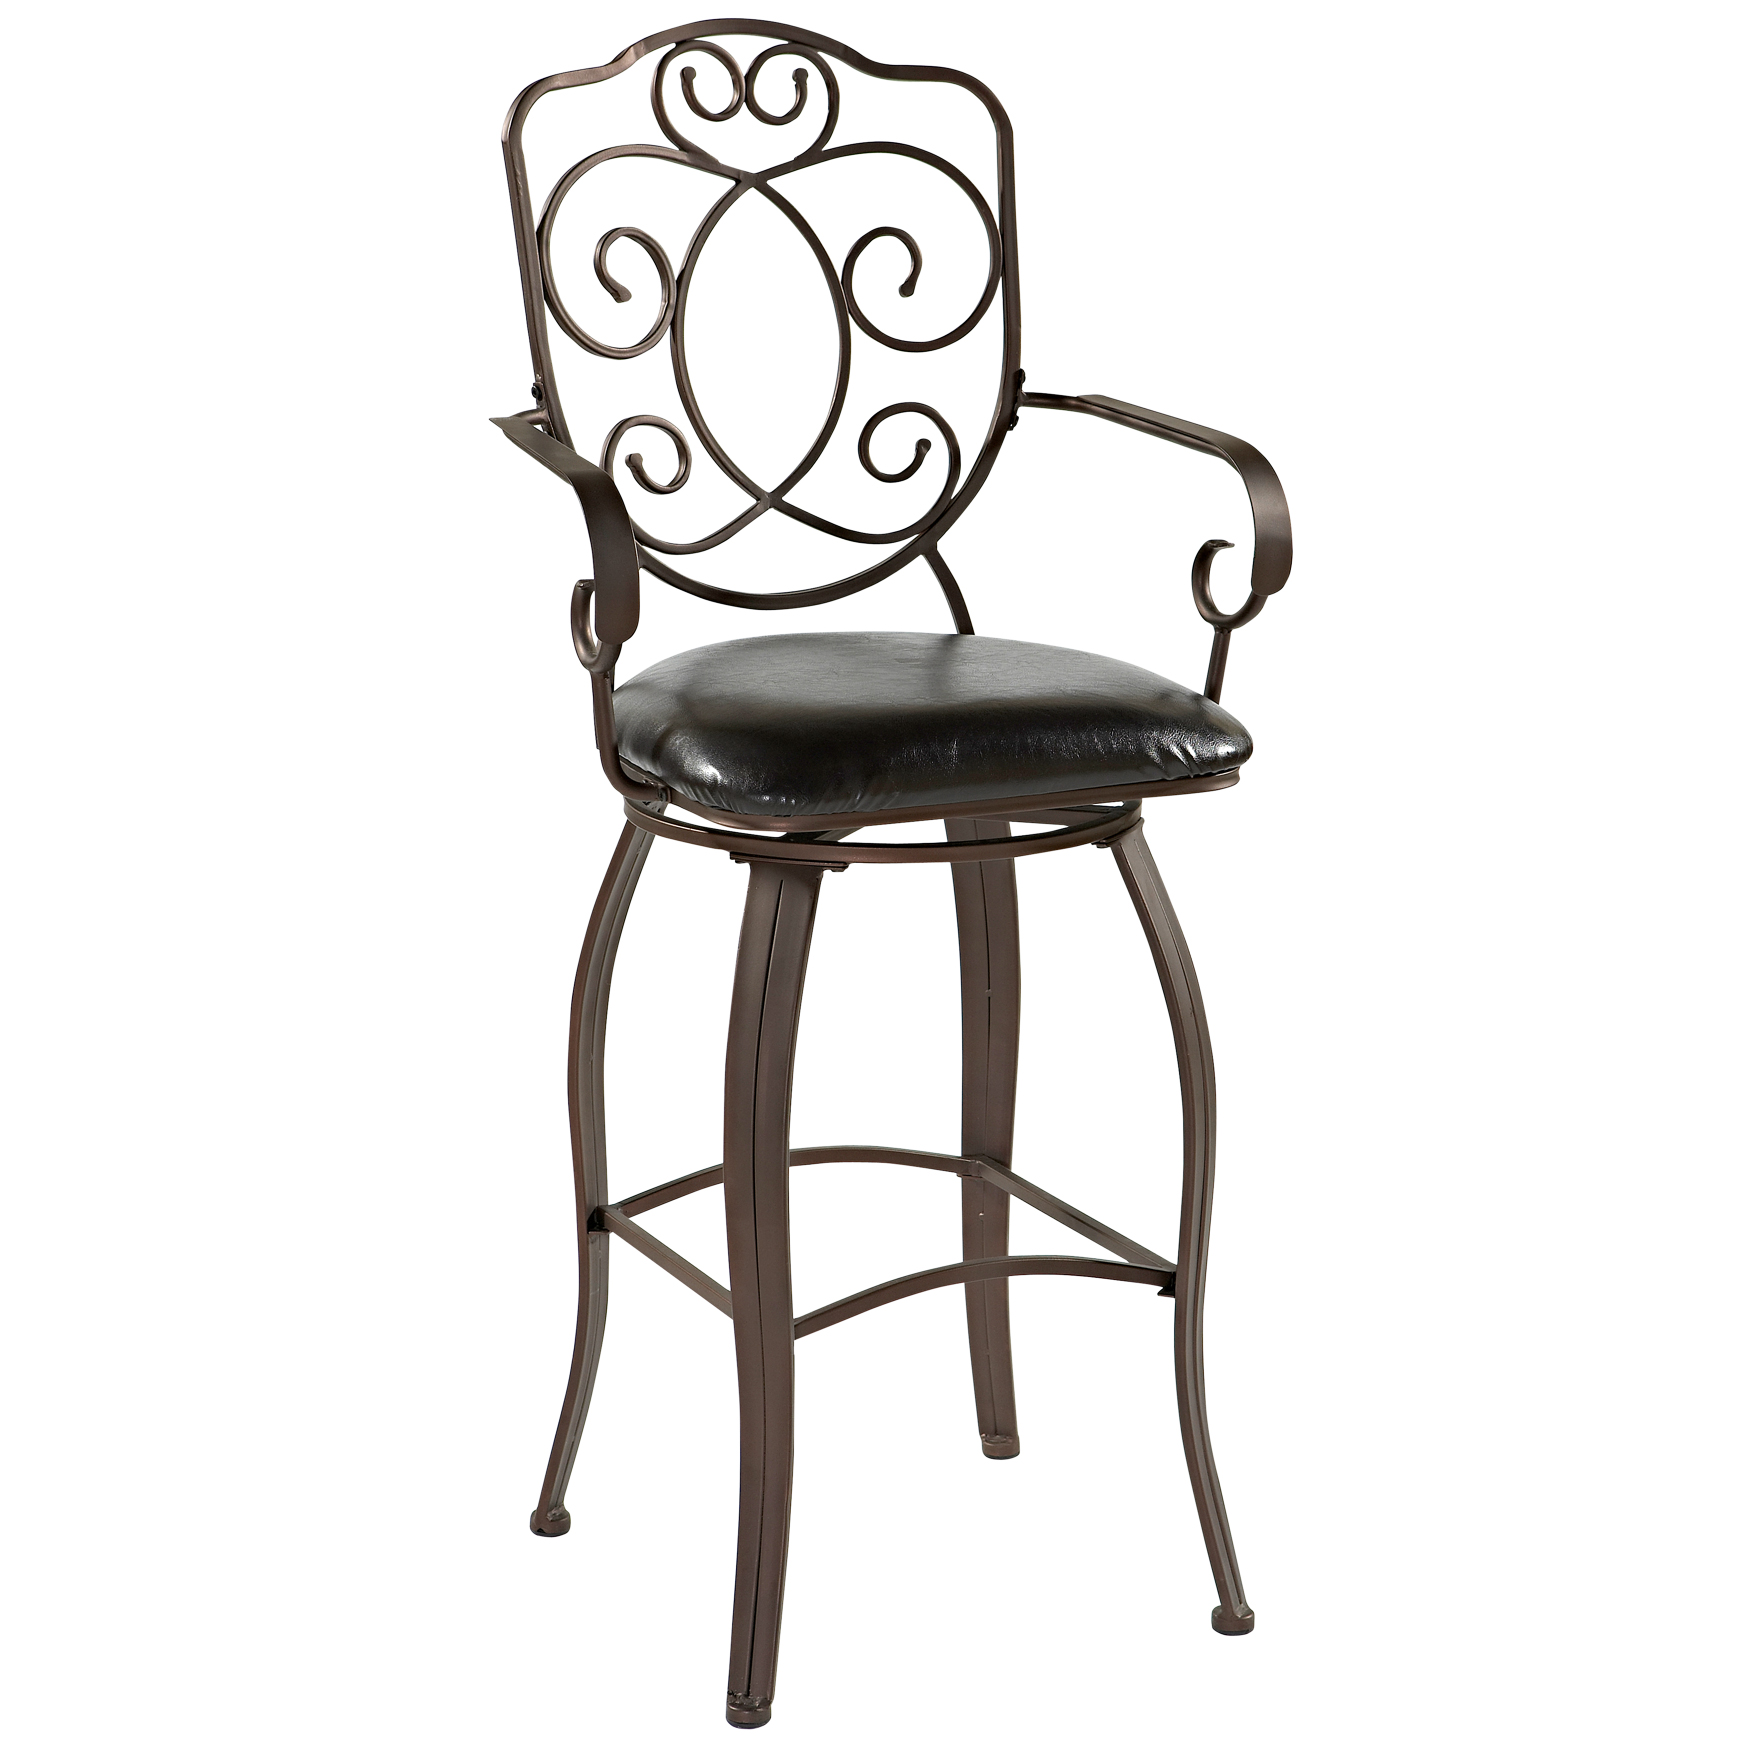 Crested Back Bar Stool 30h Plus Size Bar Stools Brylane Home